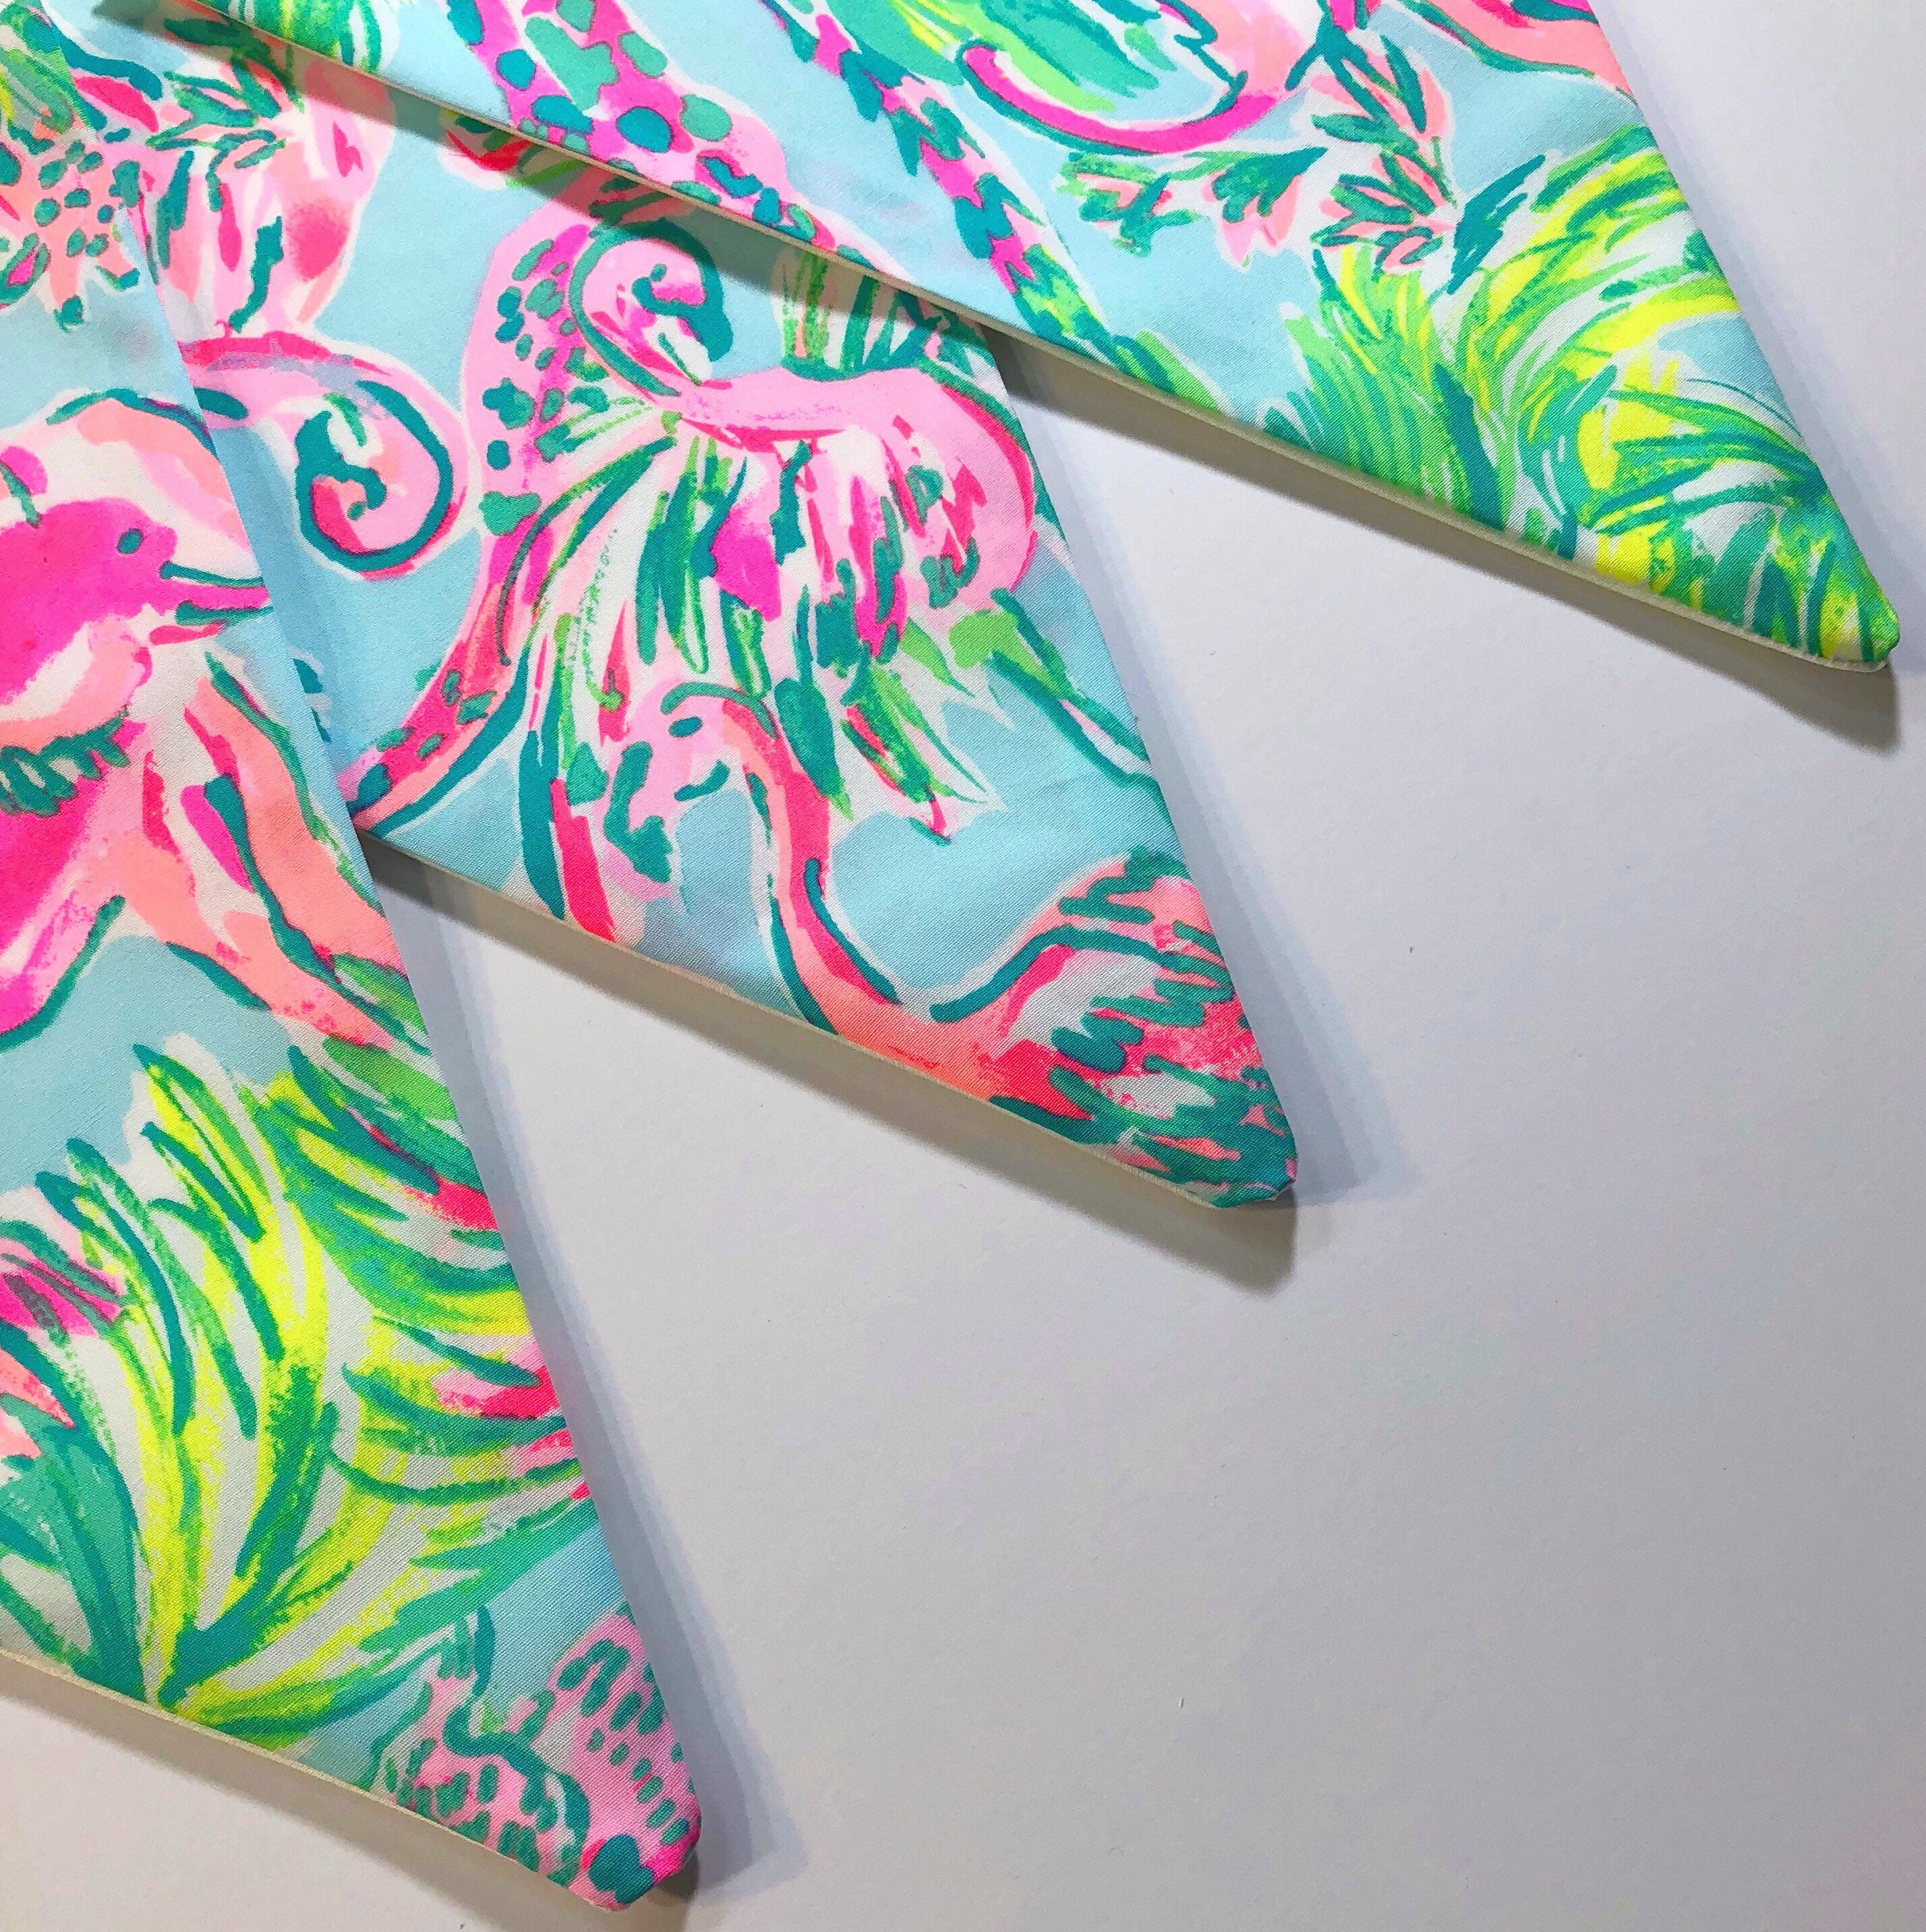 Custom Flag Banner, Bunting Made With Lilly Pulitzer On Parade Print Fabric